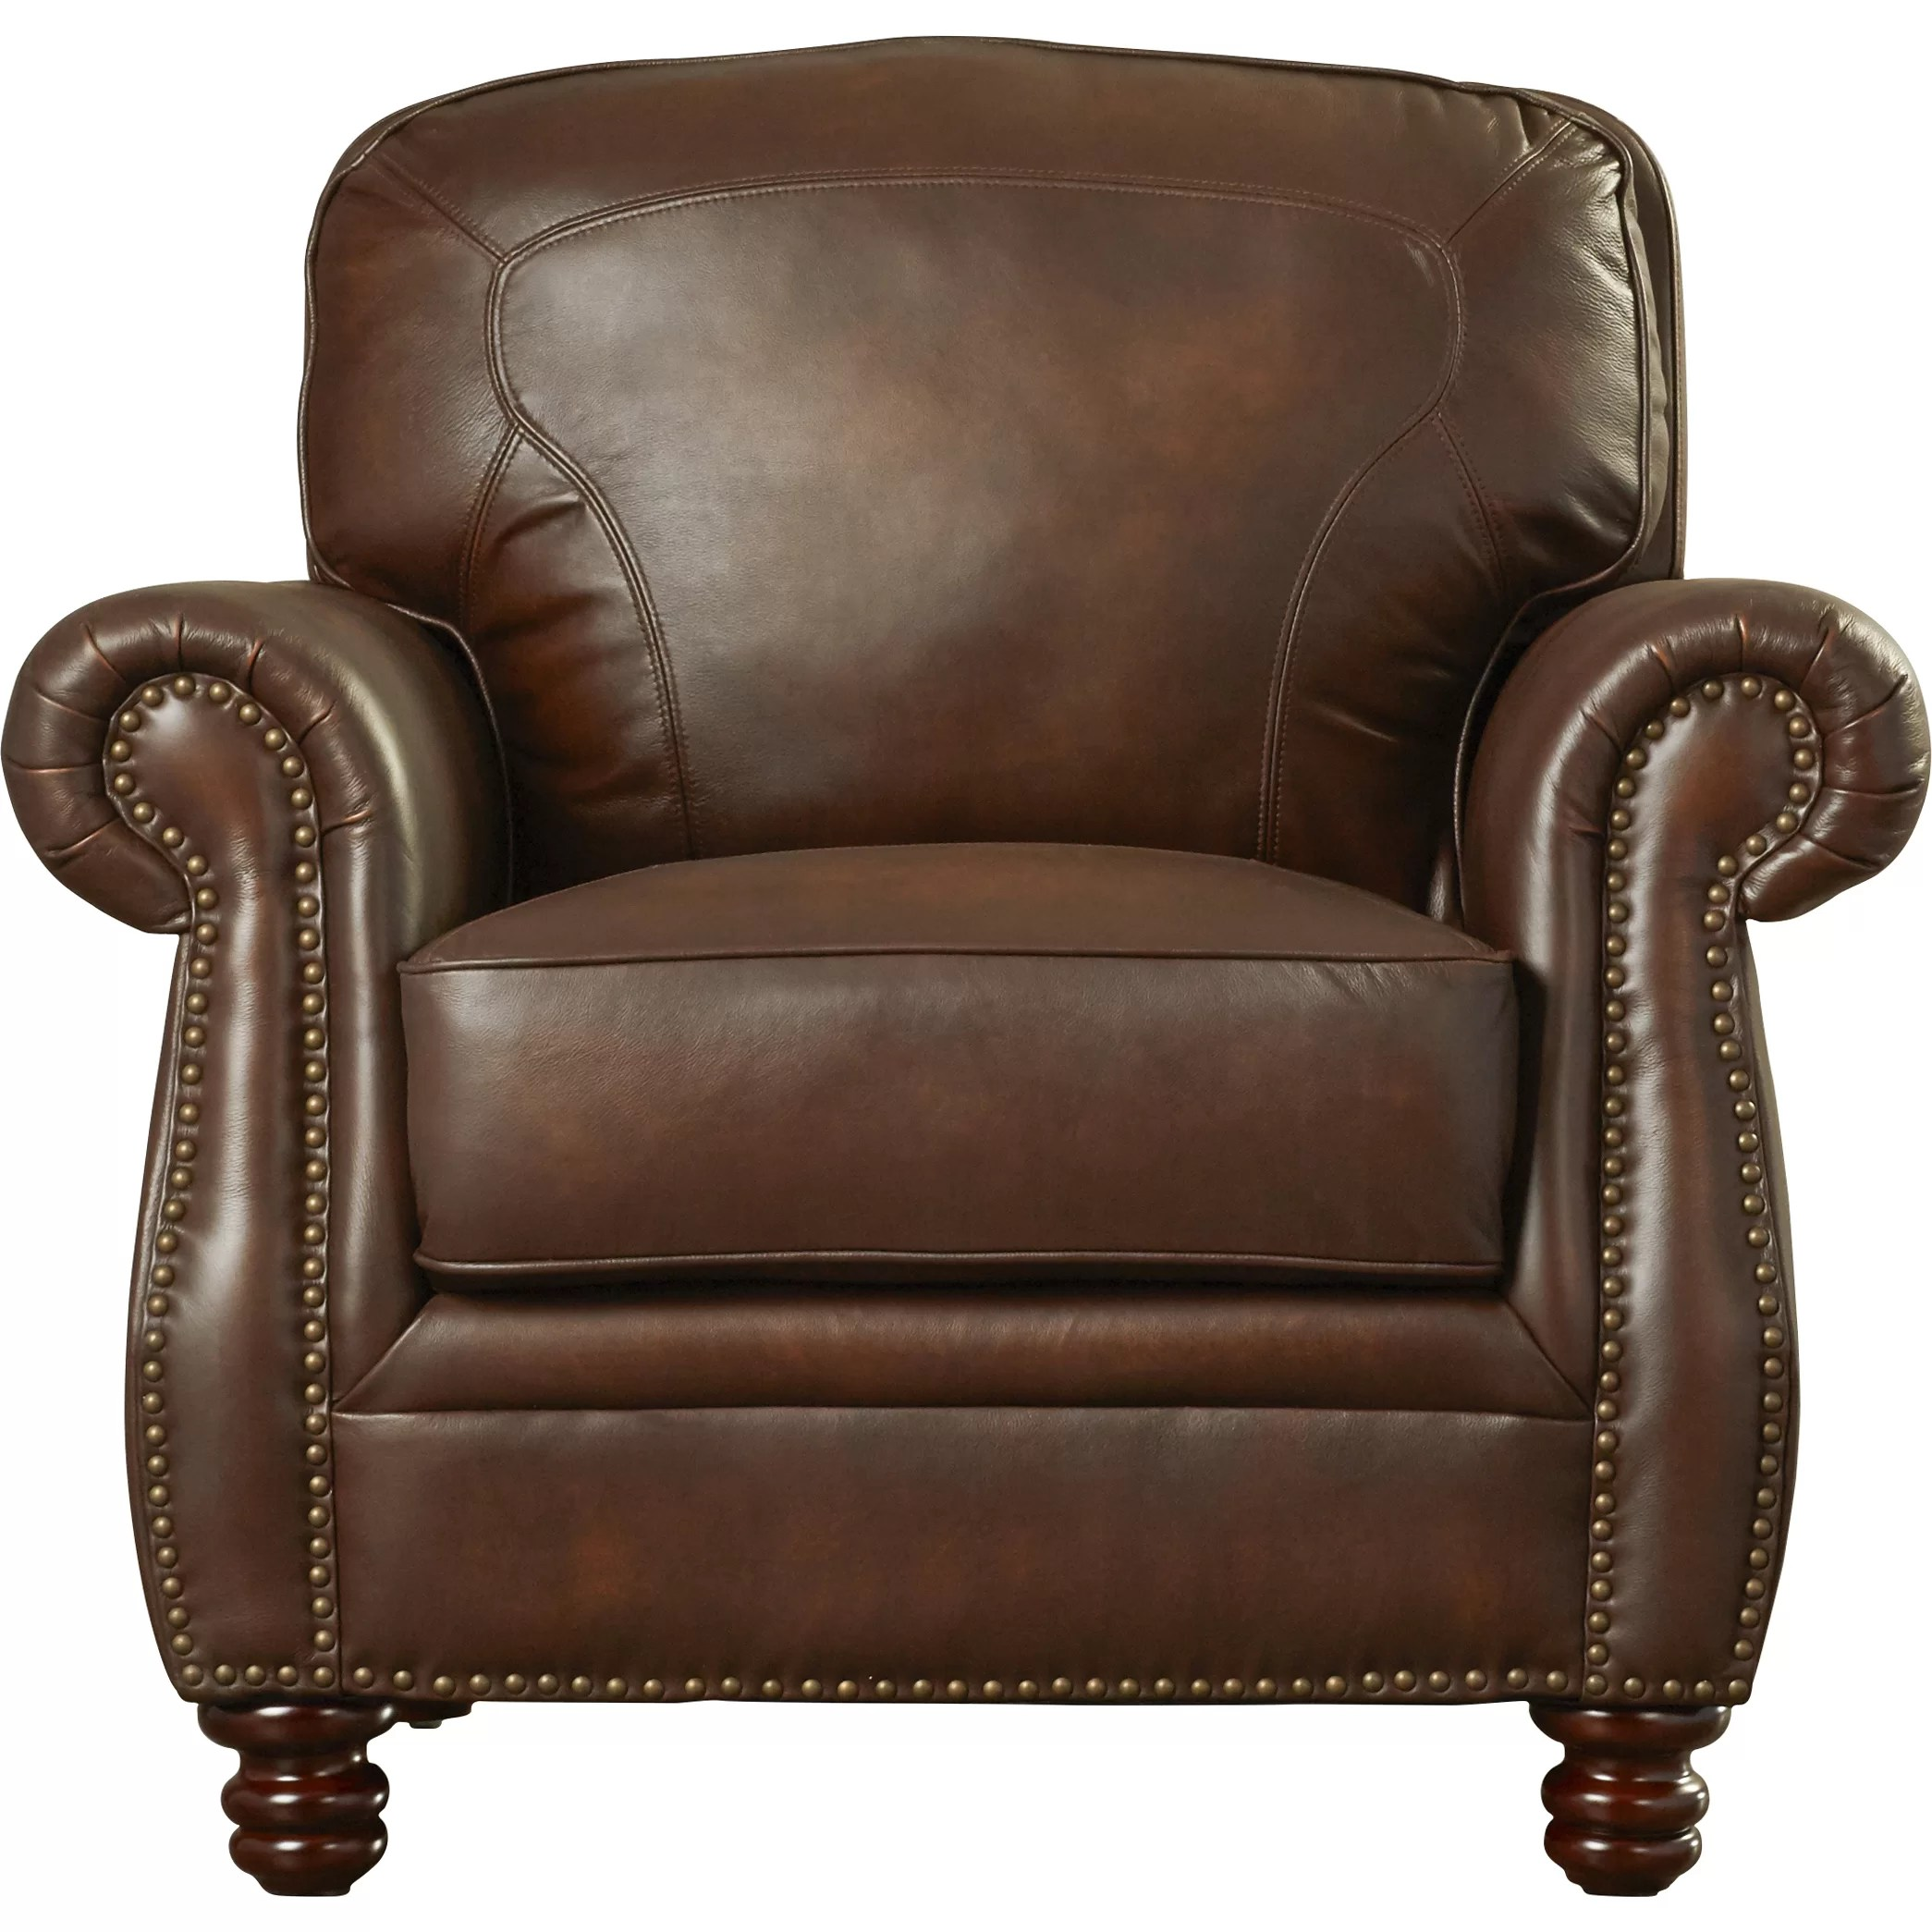 Leather Club Chair Rosalind Wheeler Mcdonnell Leather Club Chair And Reviews